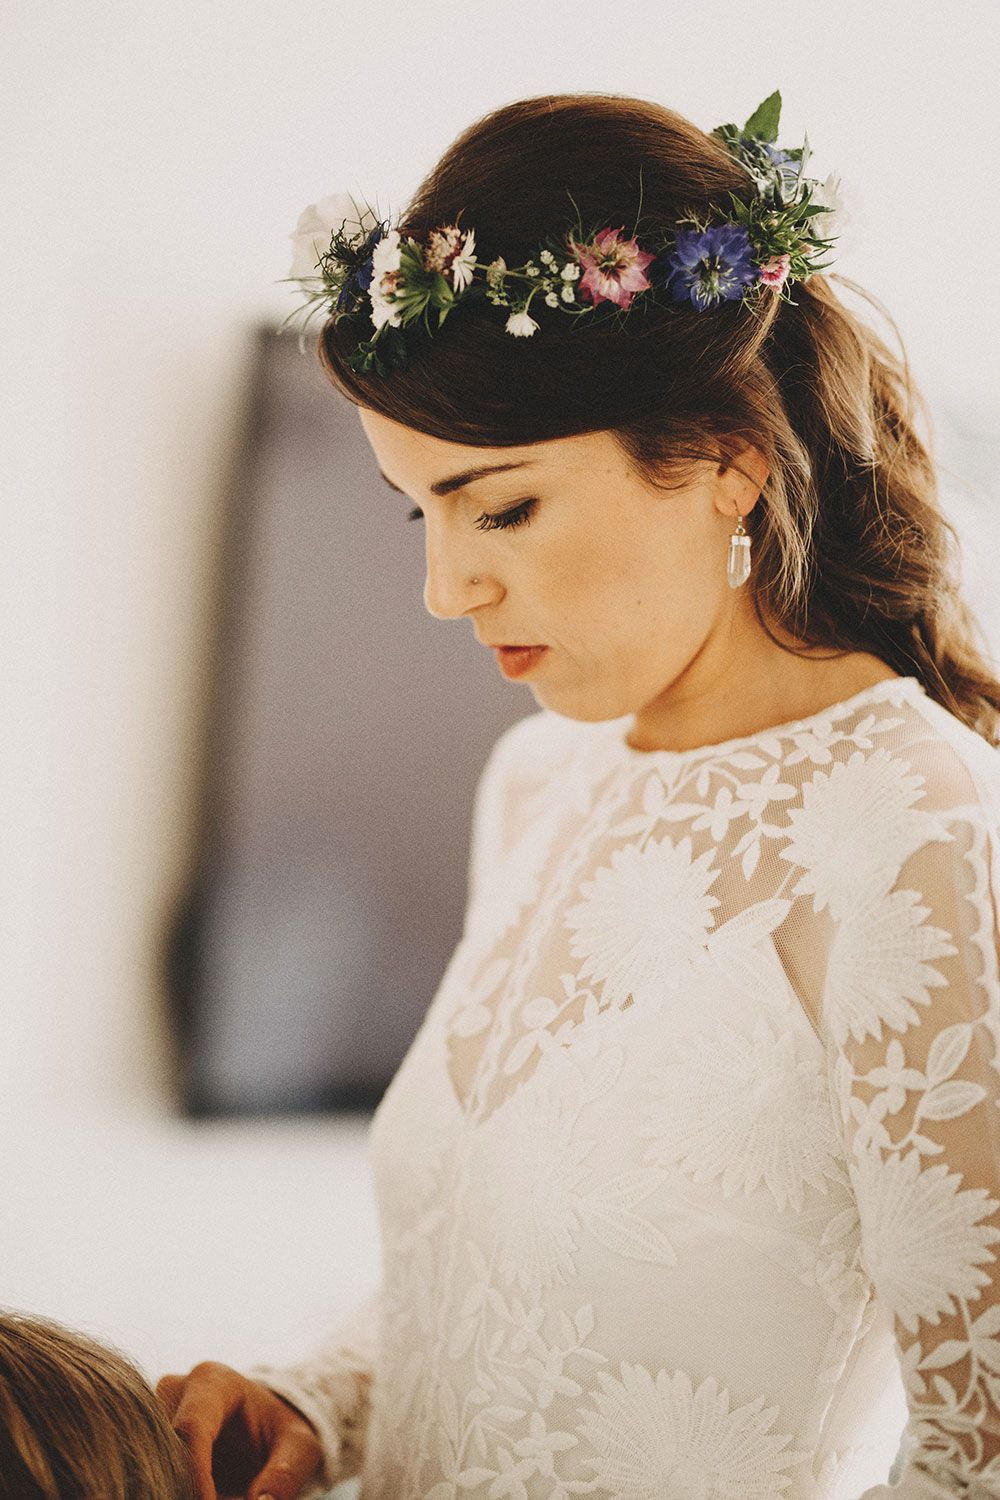 Katy wearing rue de seine chloe for a countryside festival wedding beautiful british english country floral wildflower love in the mist cornflower blue flower crown with rue izmirmasajfo